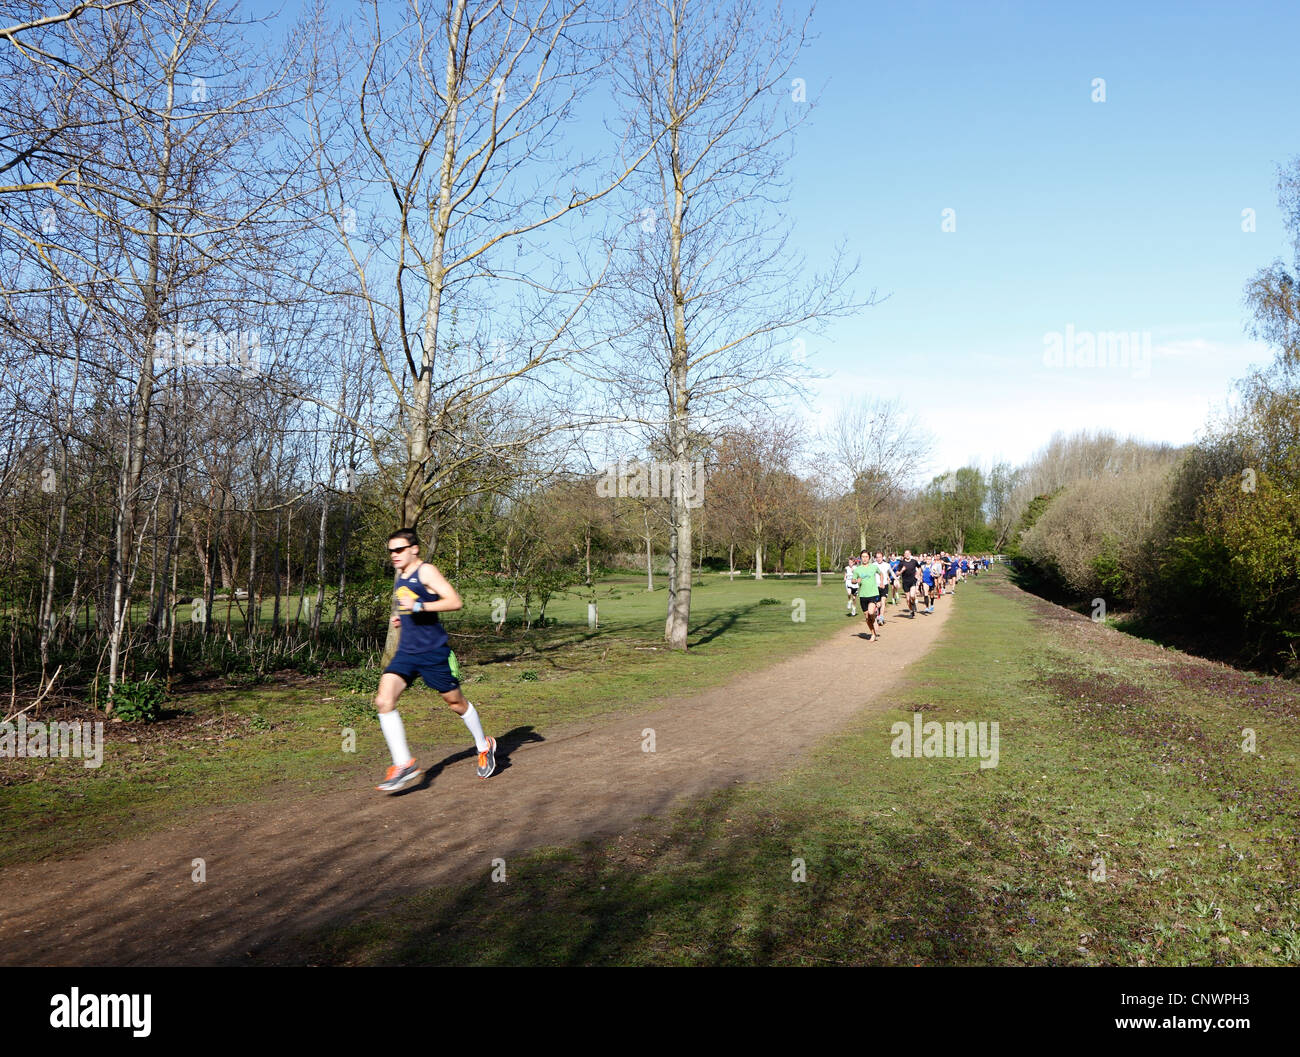 ahead-of-the-pack-of-runners-milton-camb